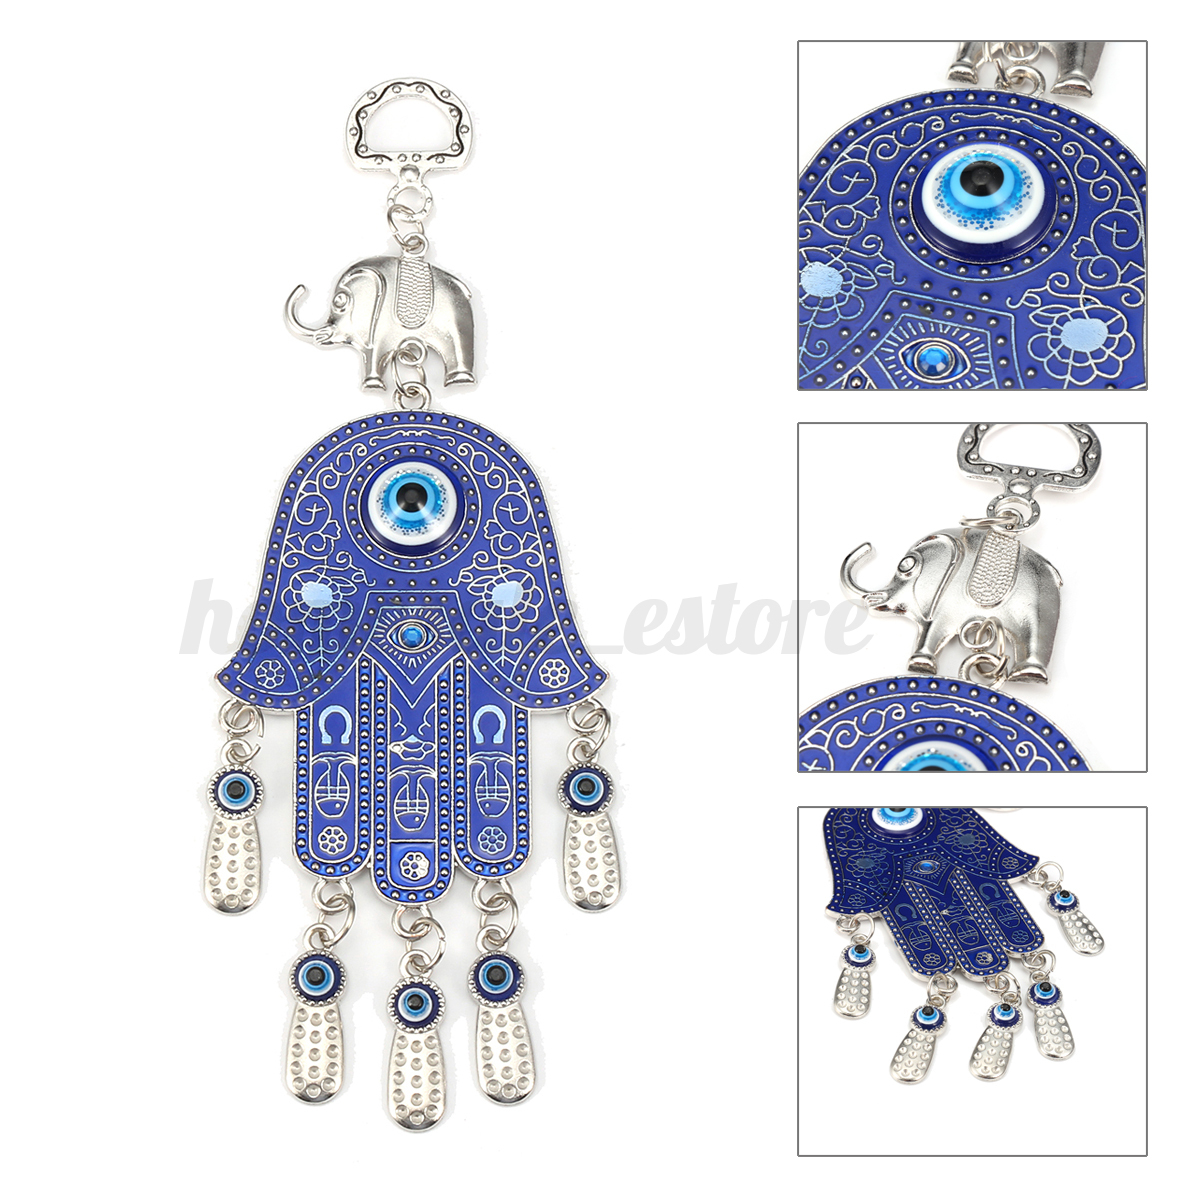 BLUE GLASS 3 BEADS 3 DEER TURKISH EVIL EYE KEY CHAIN RING AMULET PENDANT CHARM